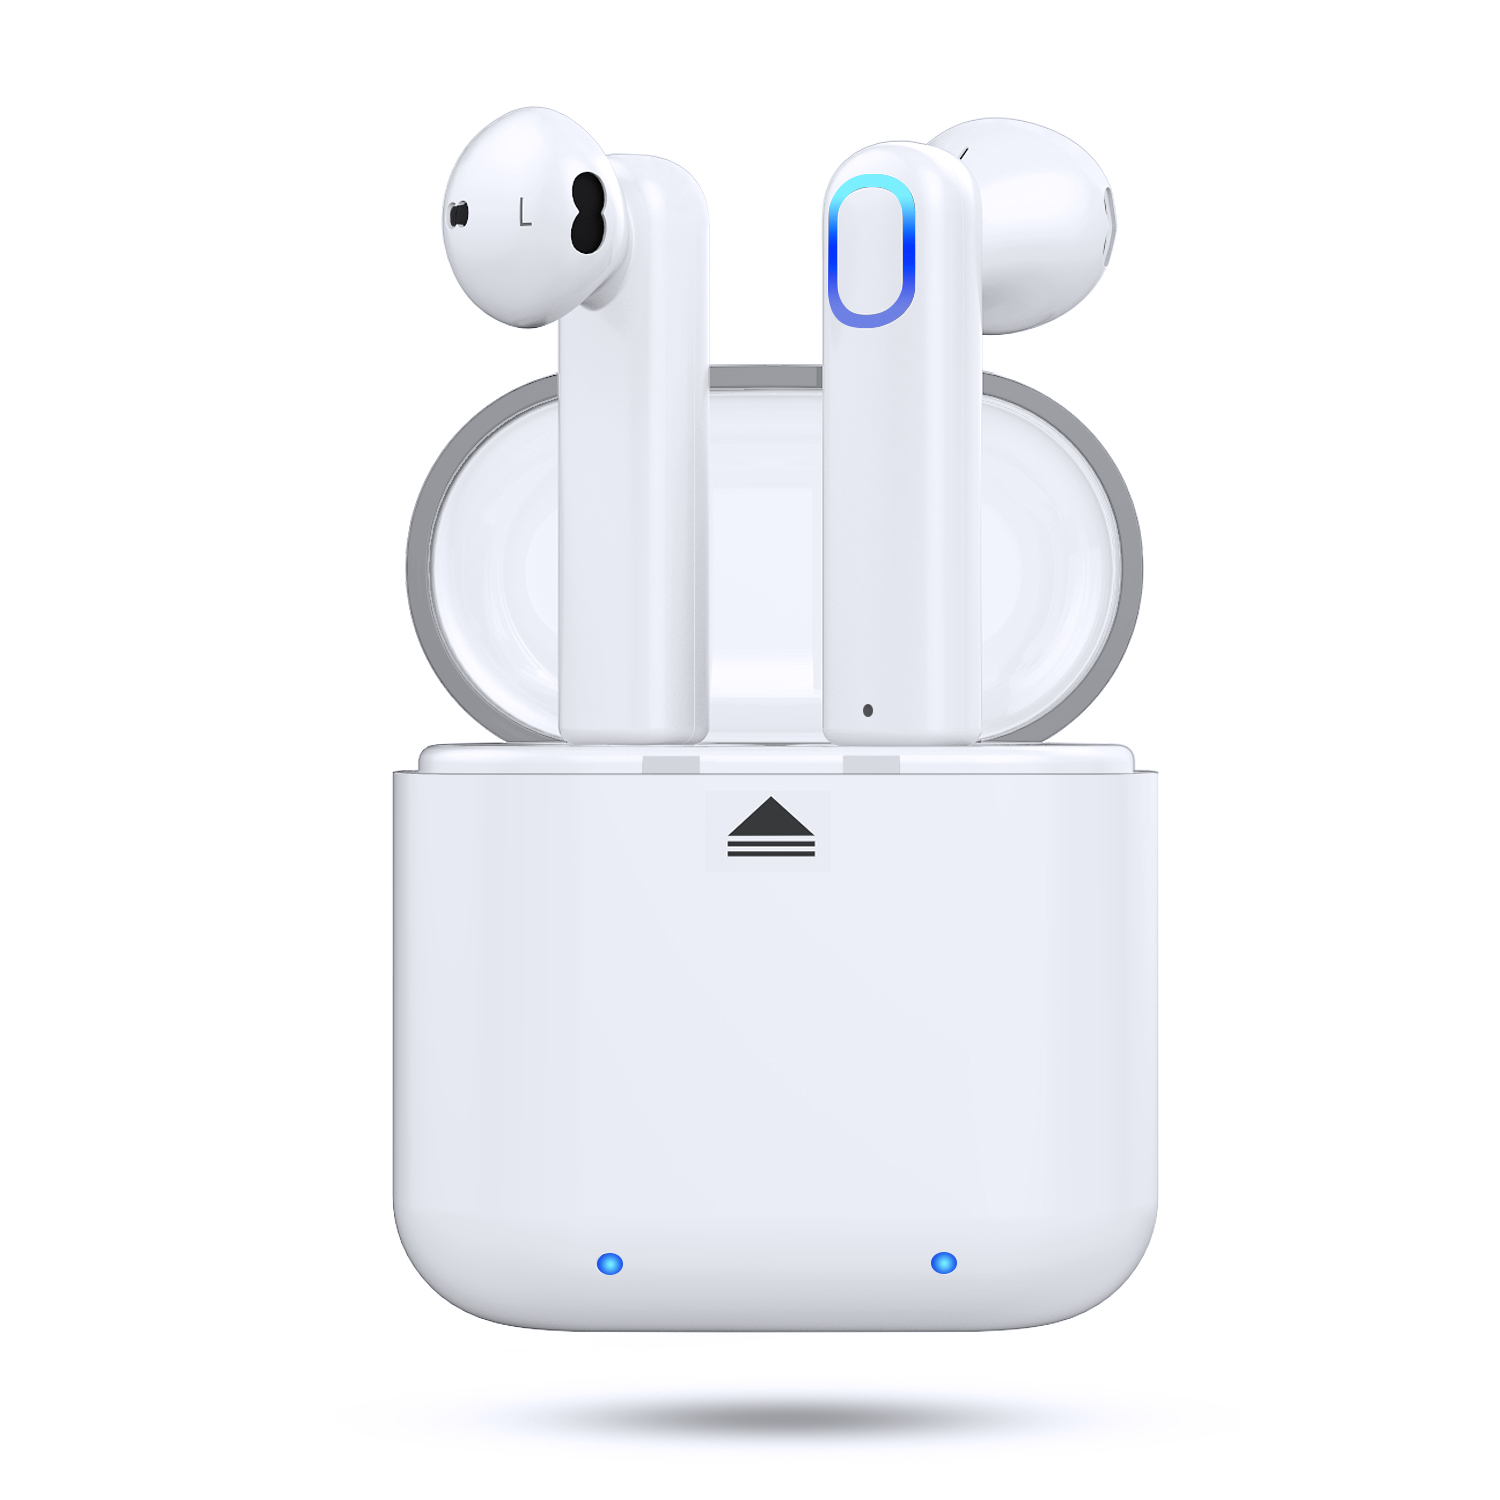 Android Compatible with iPhone Sweat-Proof Sports in-Ear Headphones Laptop and Smart Devices Wireless Earbuds Bluetooth 5.0 Headphones